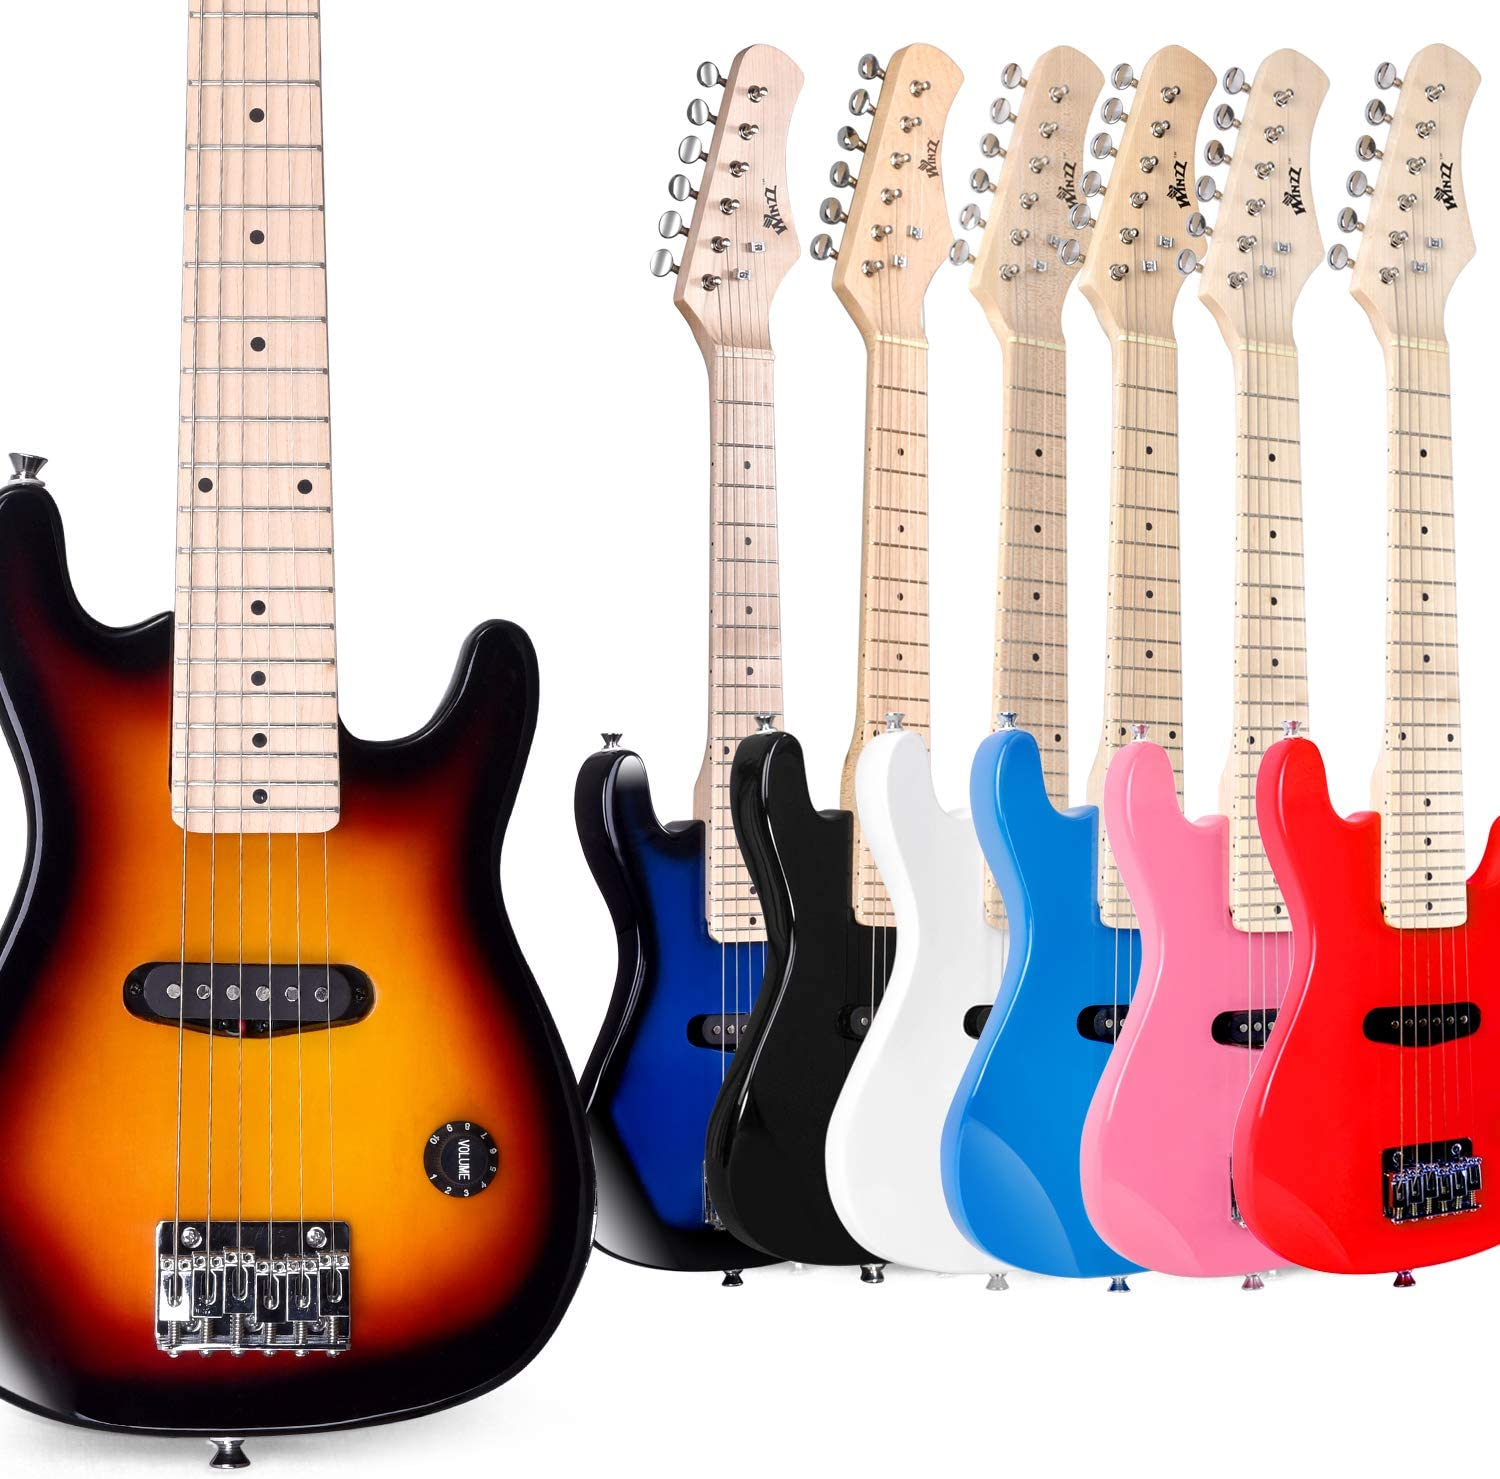 WINZZ 30 Inches Real Kids Electric Guitar with Beginner Kit, Right Handed, Sunburst